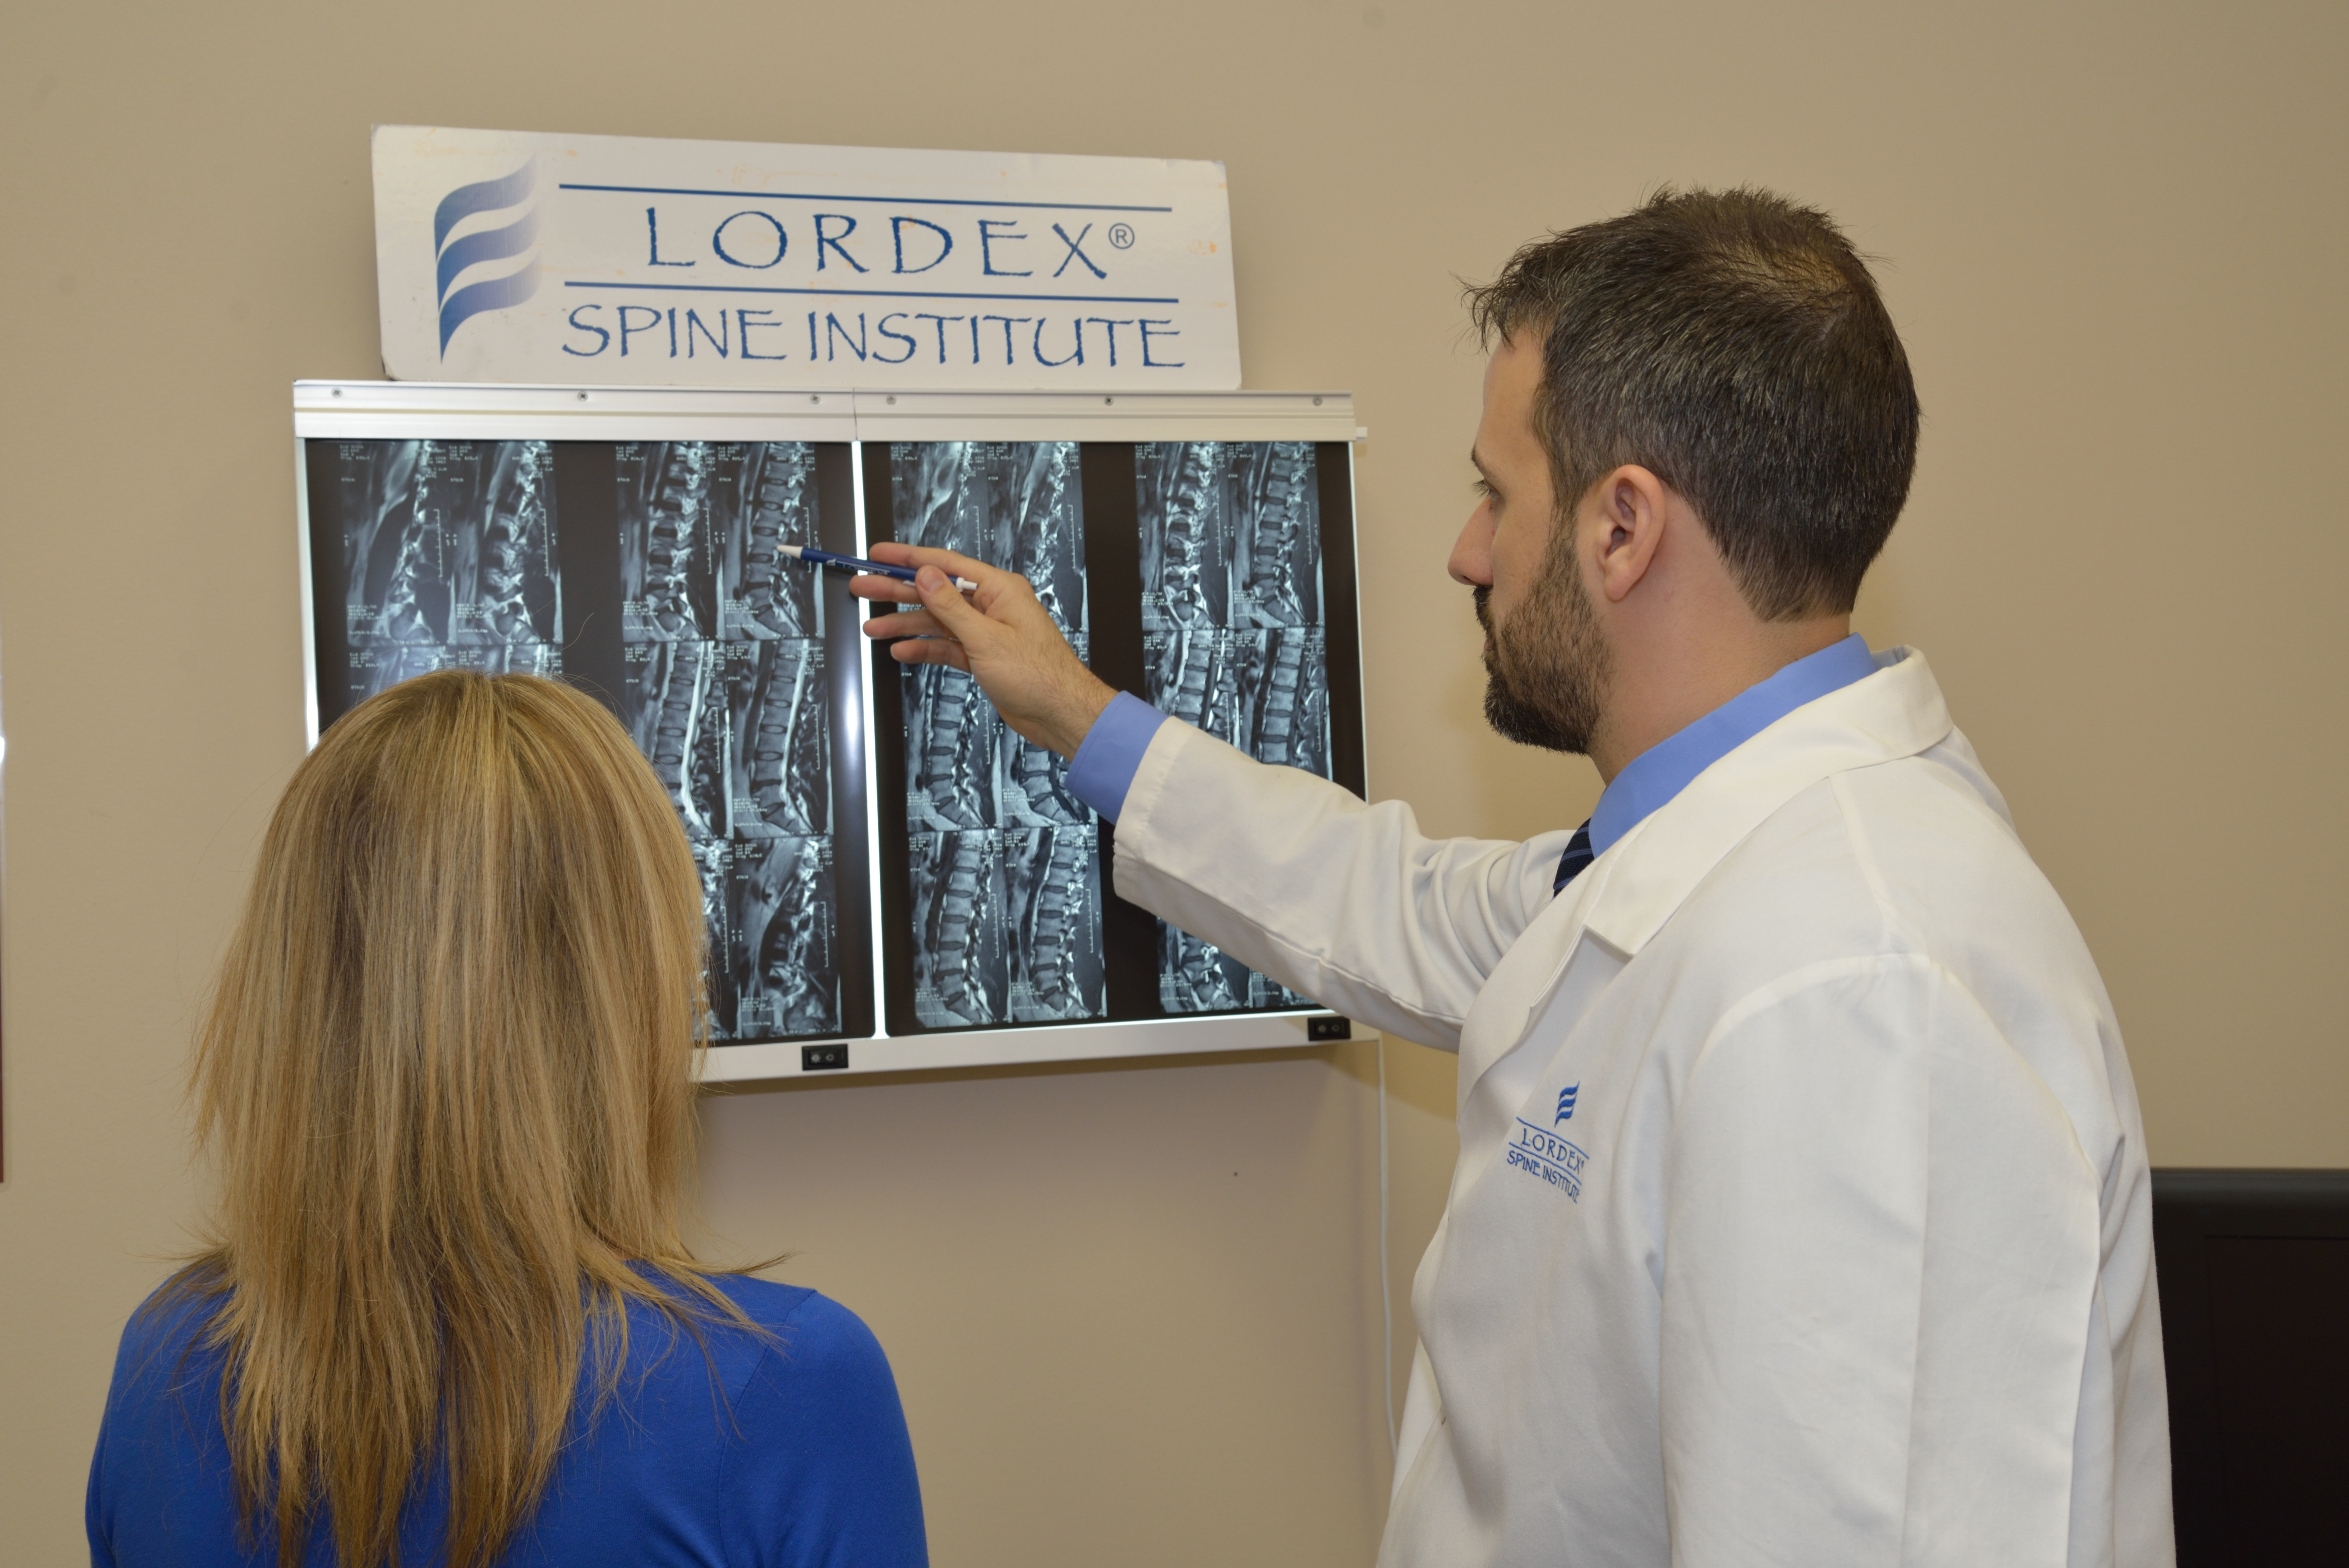 Lordex Spine Institute, League City Texas (tx. Microwave Appliance Repair Ohio Top Colleges. Rose Hulman Institute Of Technology. Auto Insurance In Colorado Springs. Aluminium Replacement Windows. St Louis Roofing Companies Outside Drain Pipe. Westec Security Systems Citibank School Loans. Recycling Water Heaters Social Service Classes. Cost To Replace A Garage Door Spring